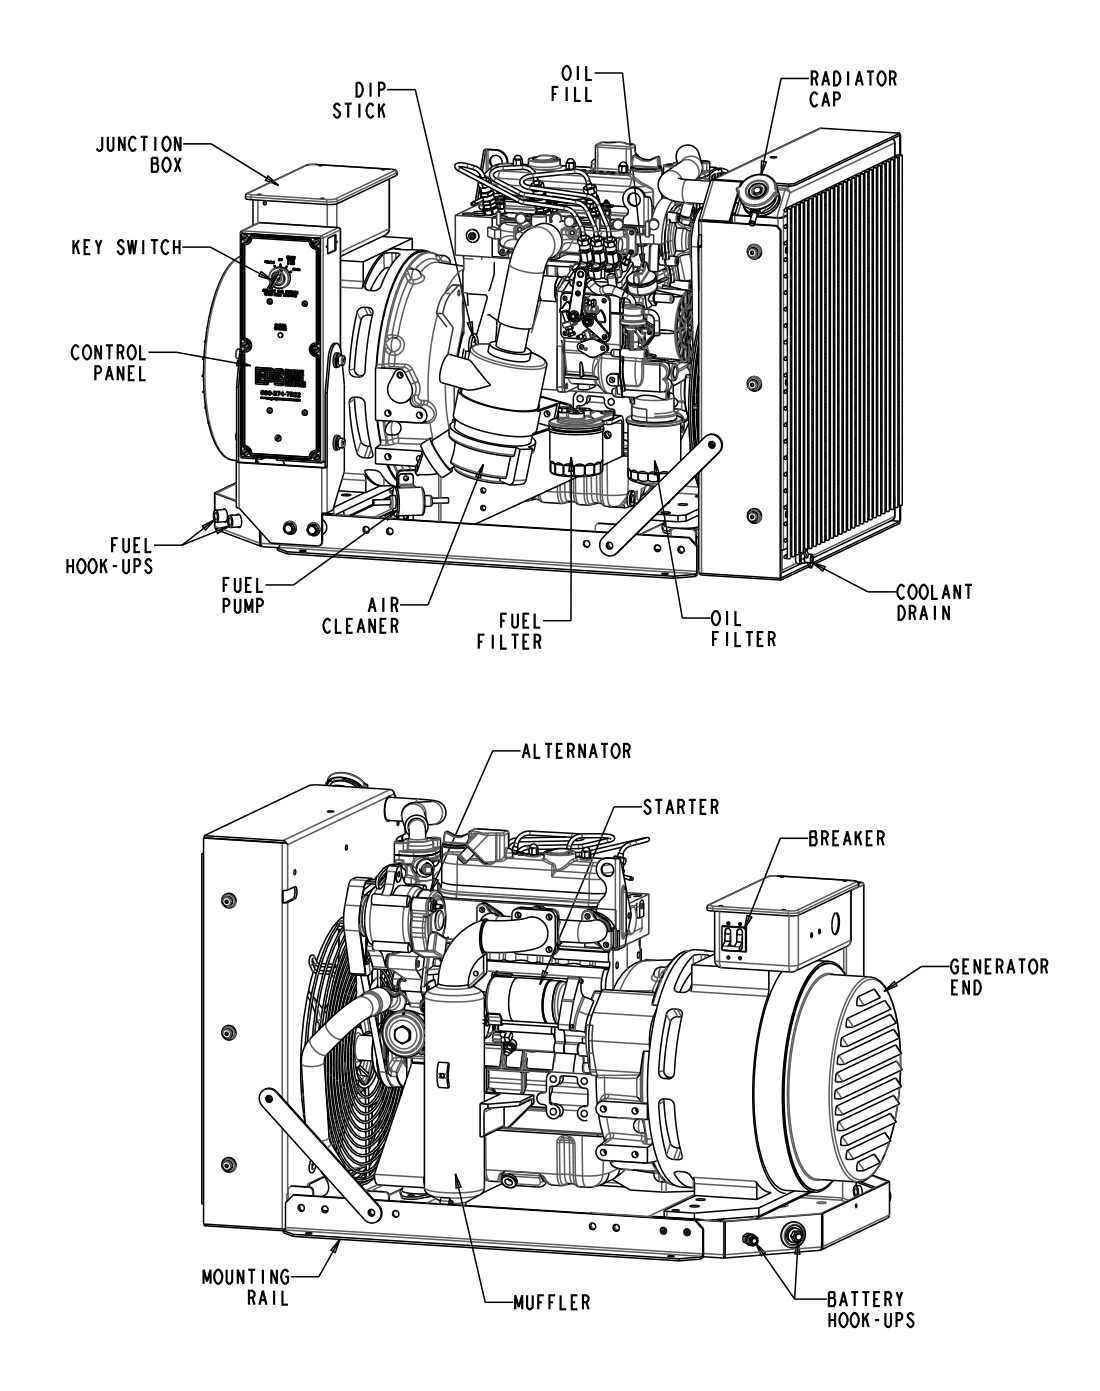 Engine Diagram For Kubota M110